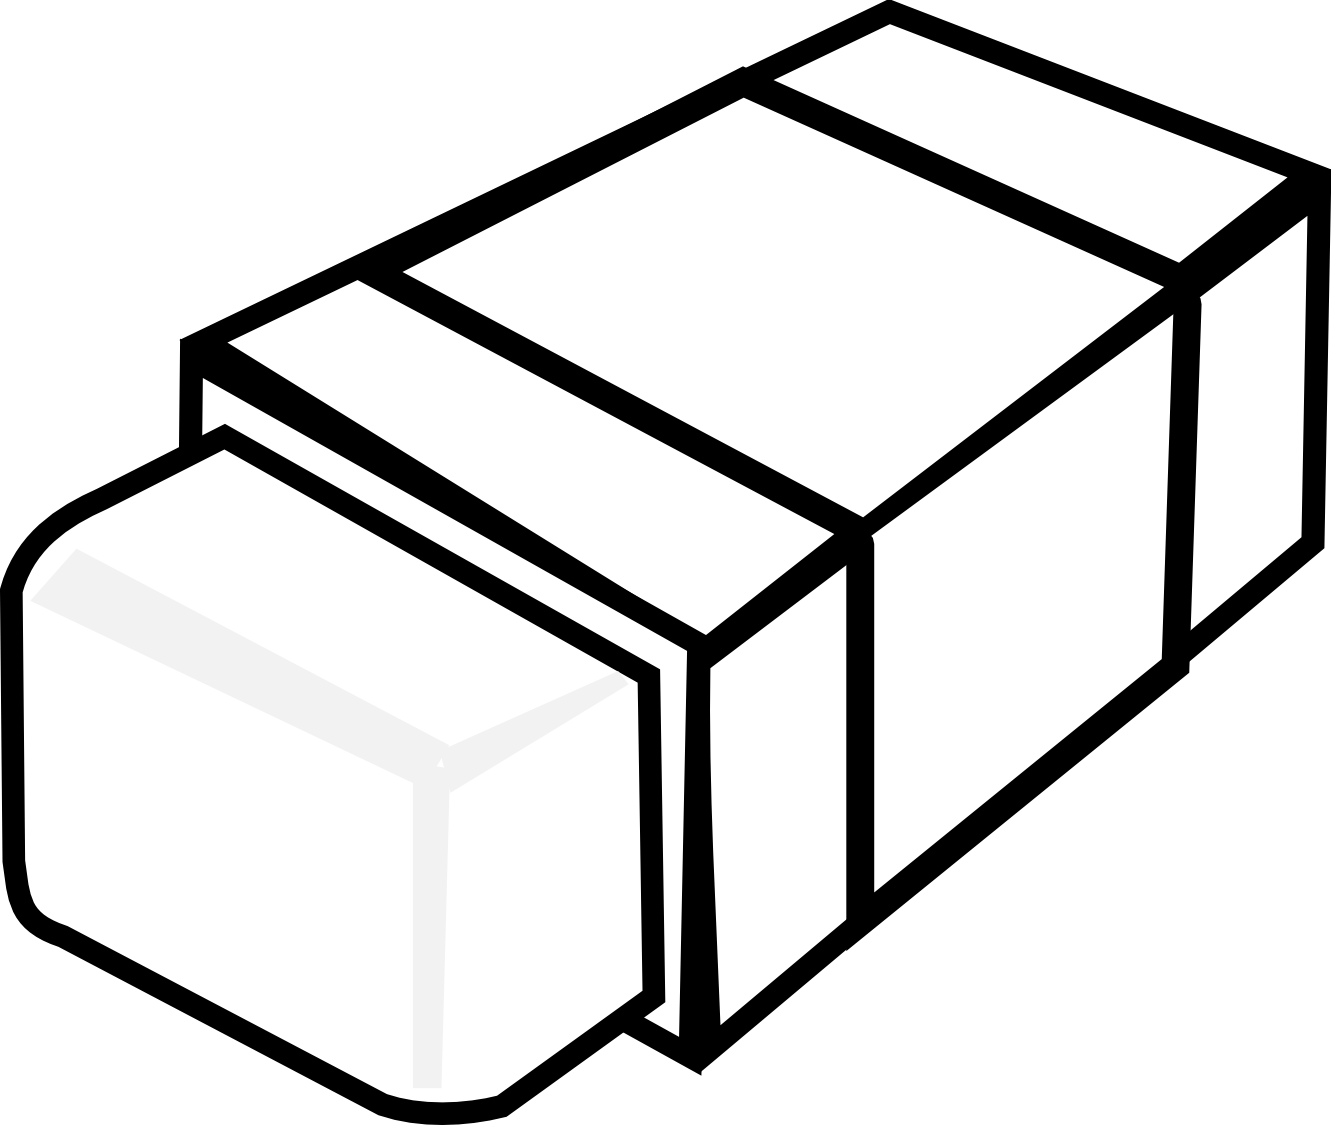 Pencil Top Eraser Clipart Black And White